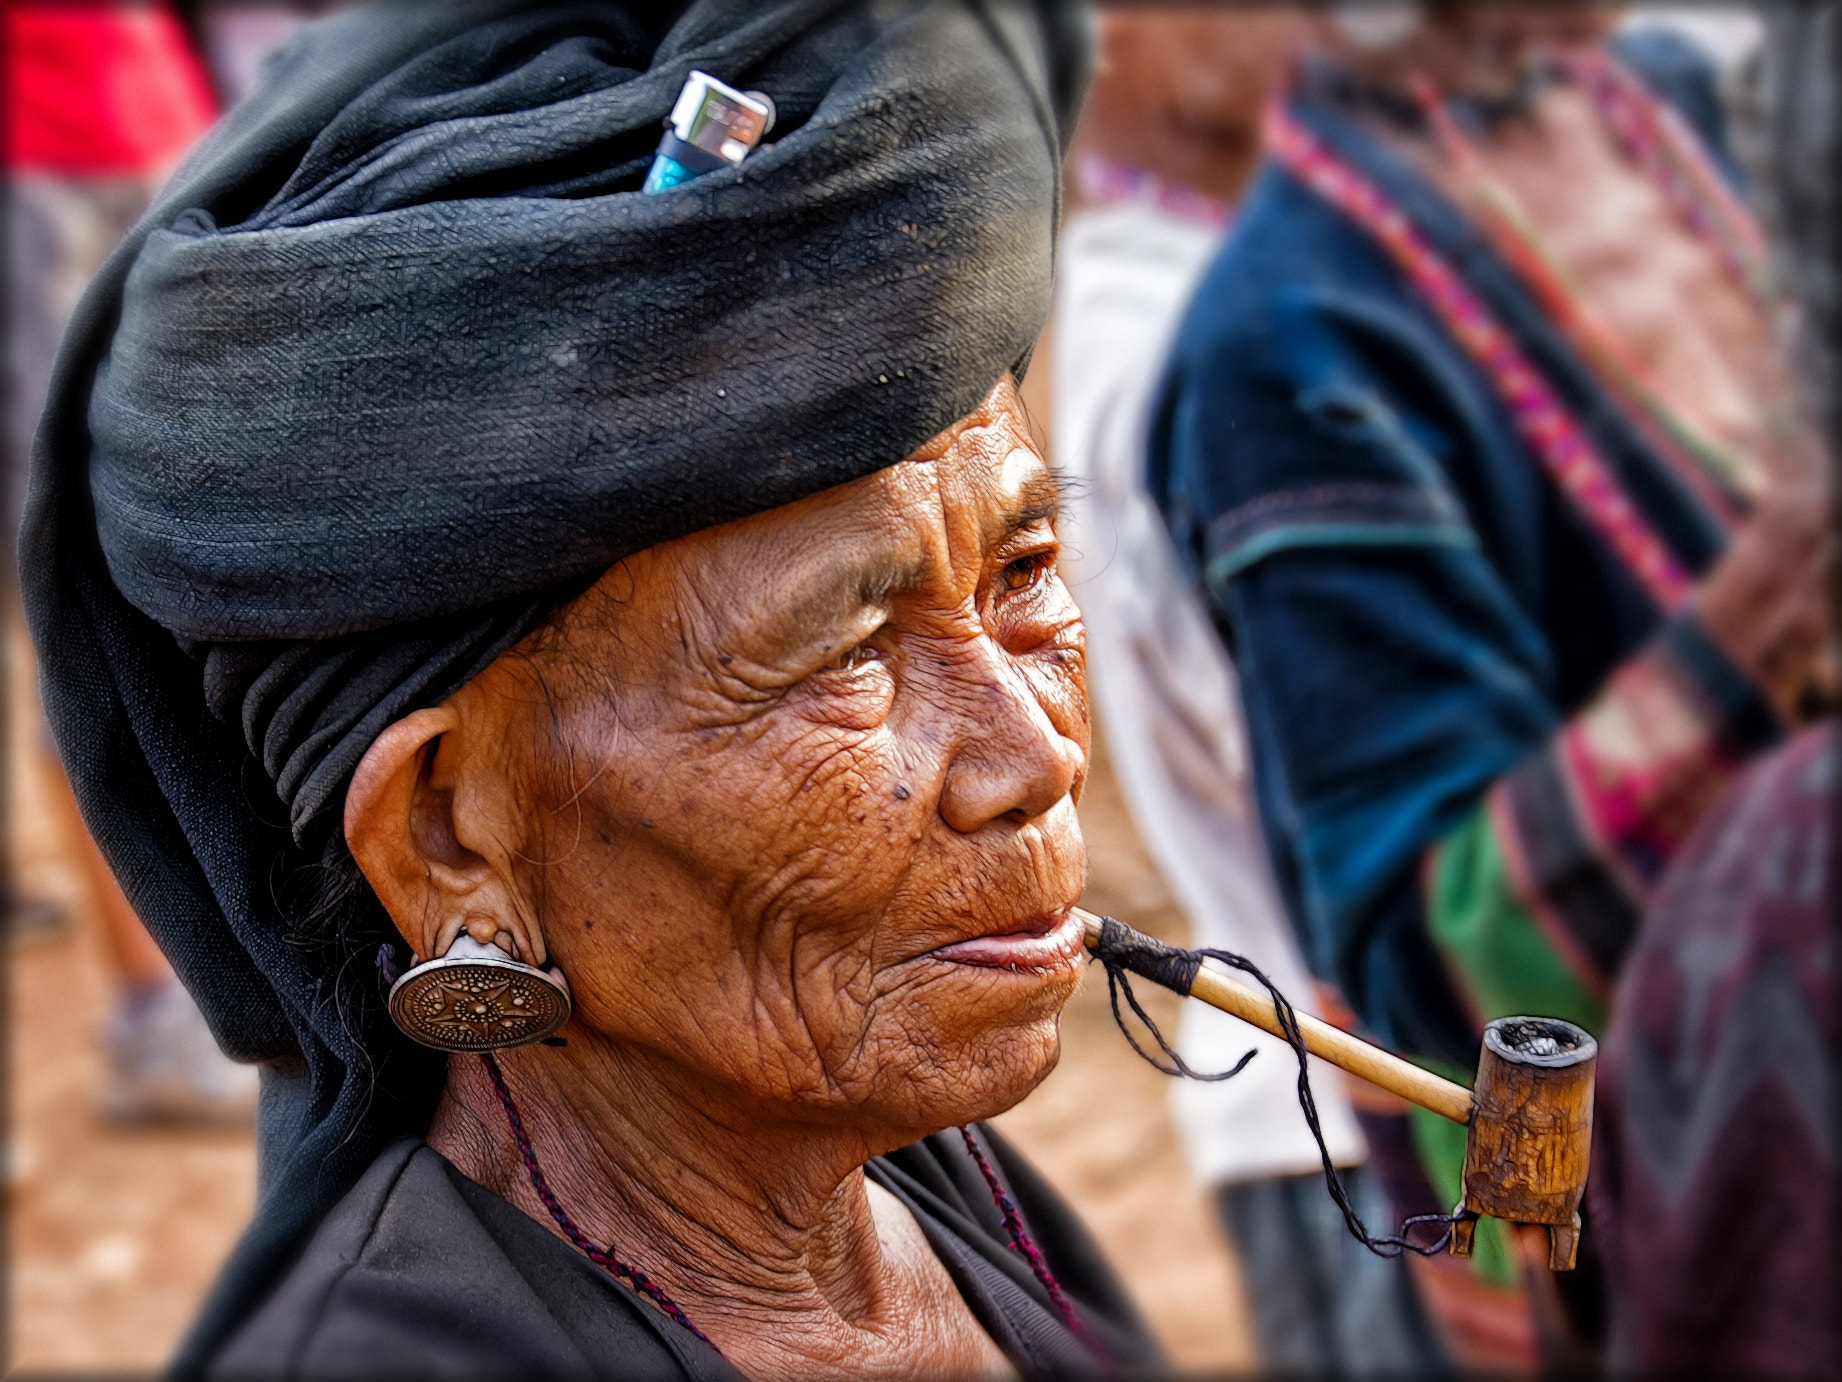 Photograph Fumando espero by Pepe Alcaide on 500px